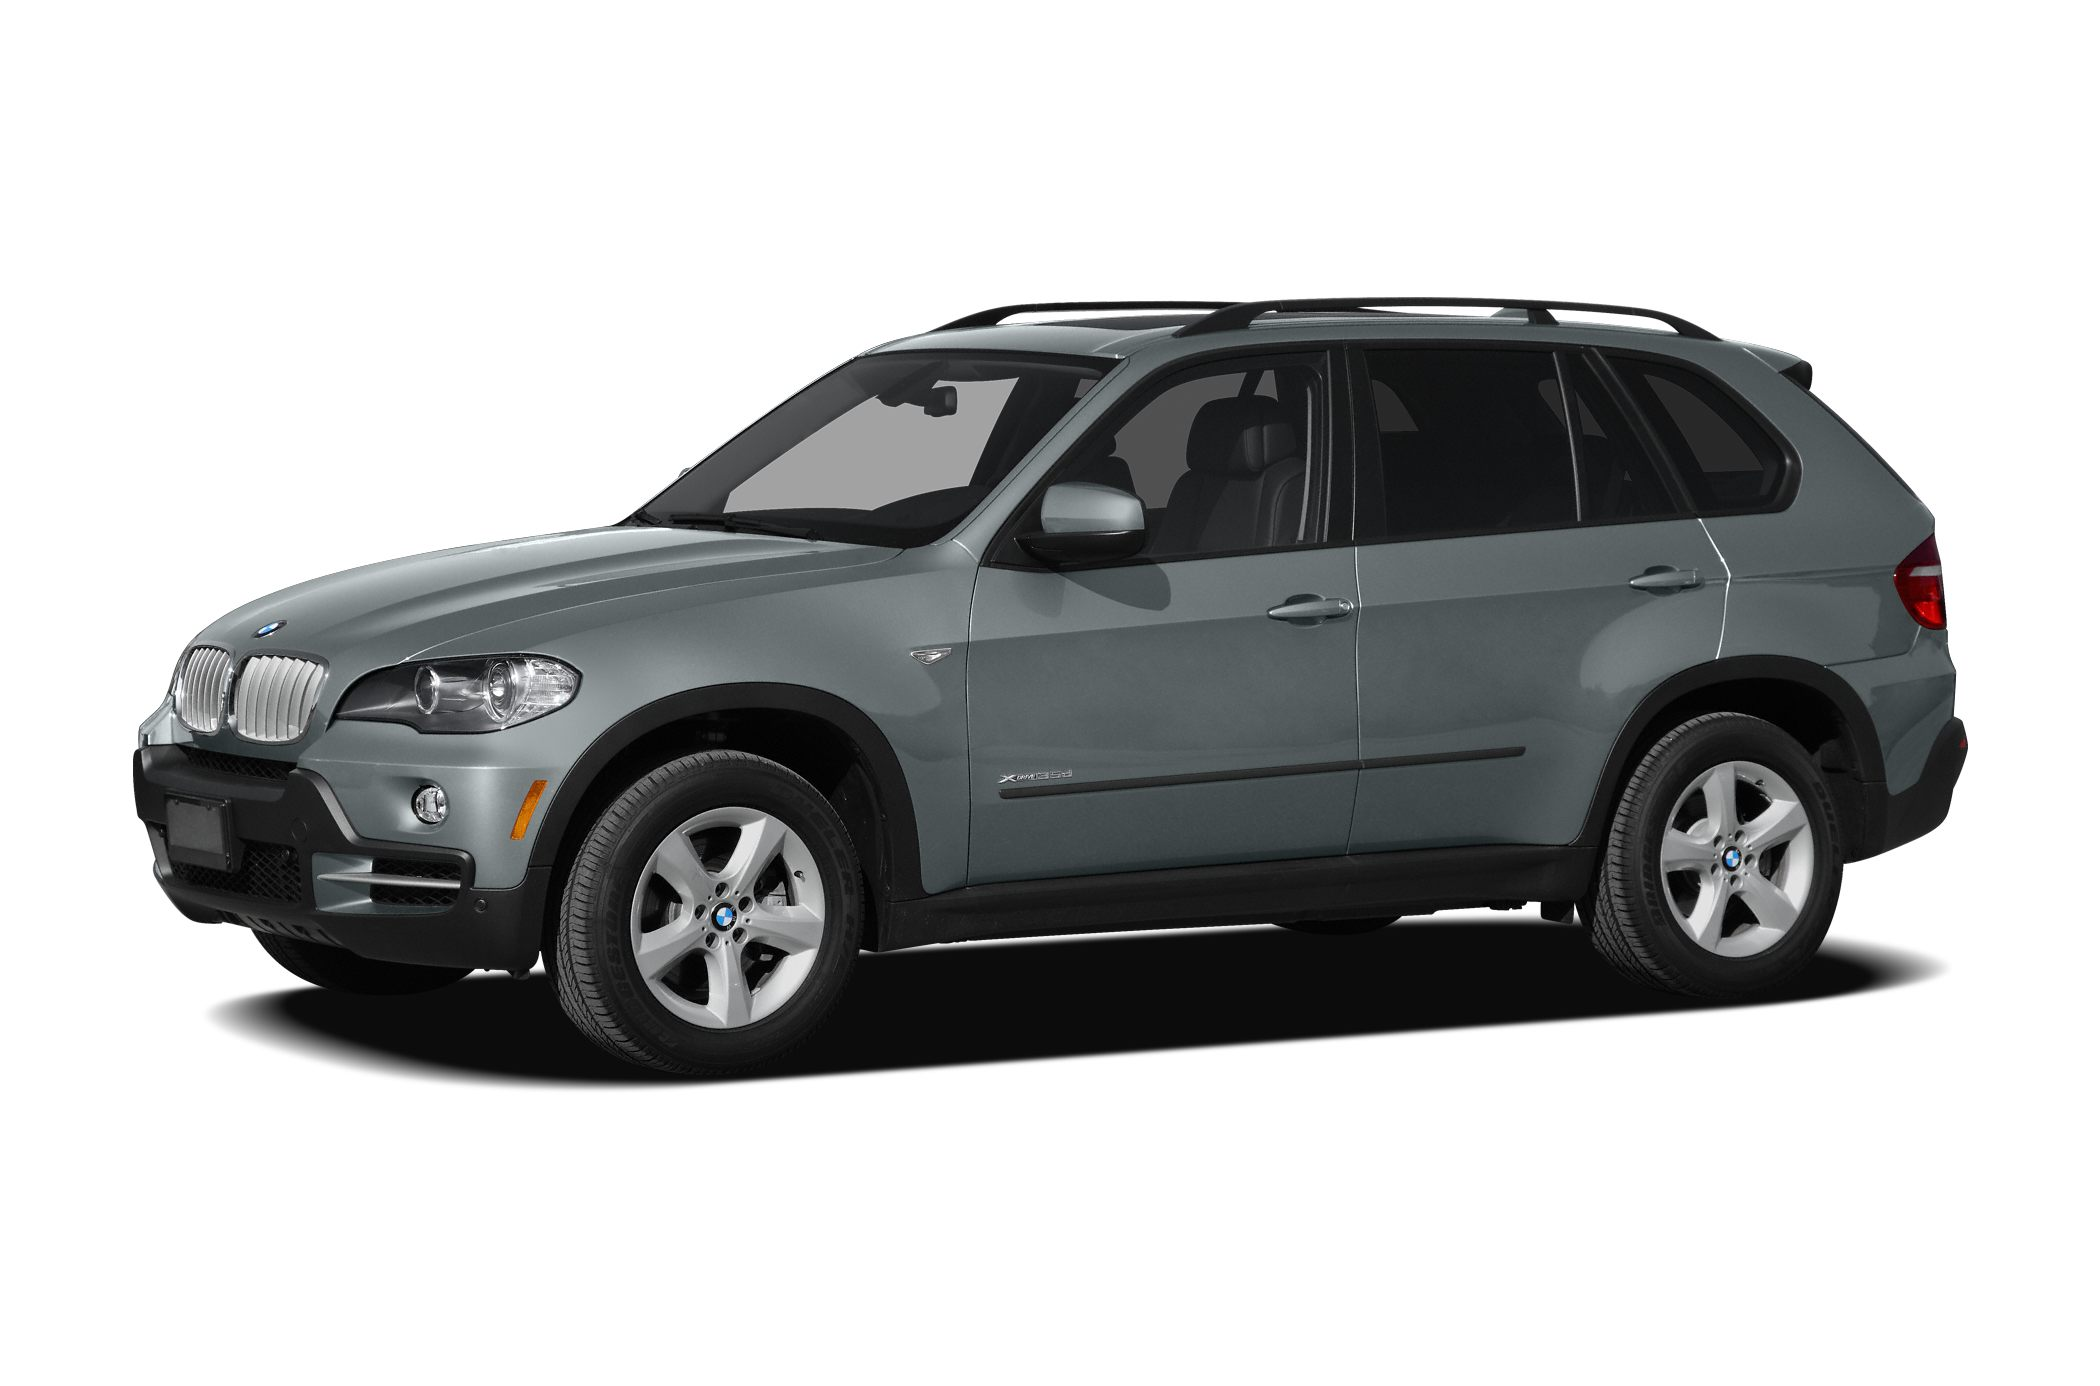 2009 BMW X5 XDrive30i SUV for sale in Lynchburg for $24,999 with 77,797 miles.